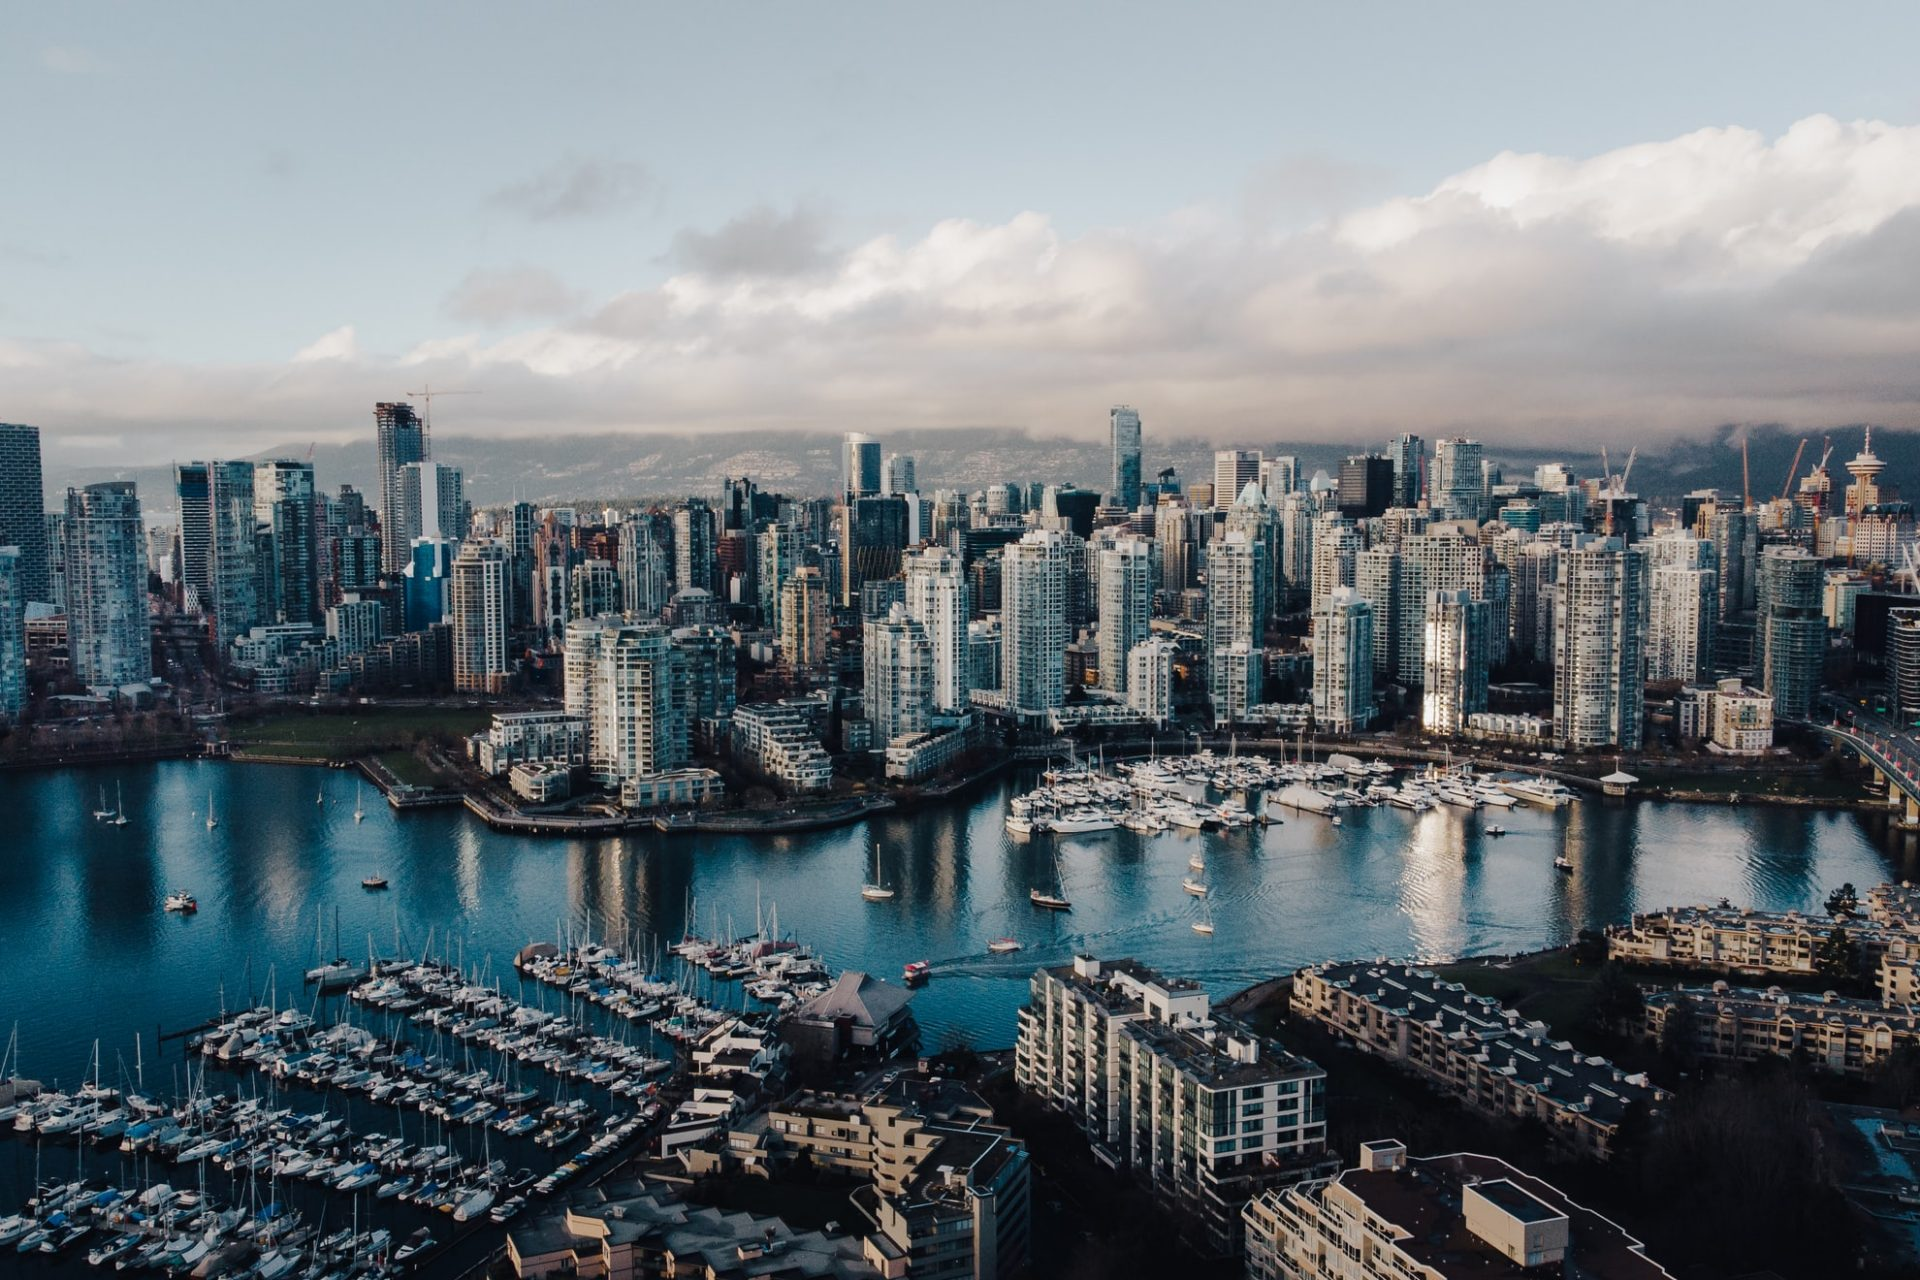 There is a link between urban areas and the global climate crisis.